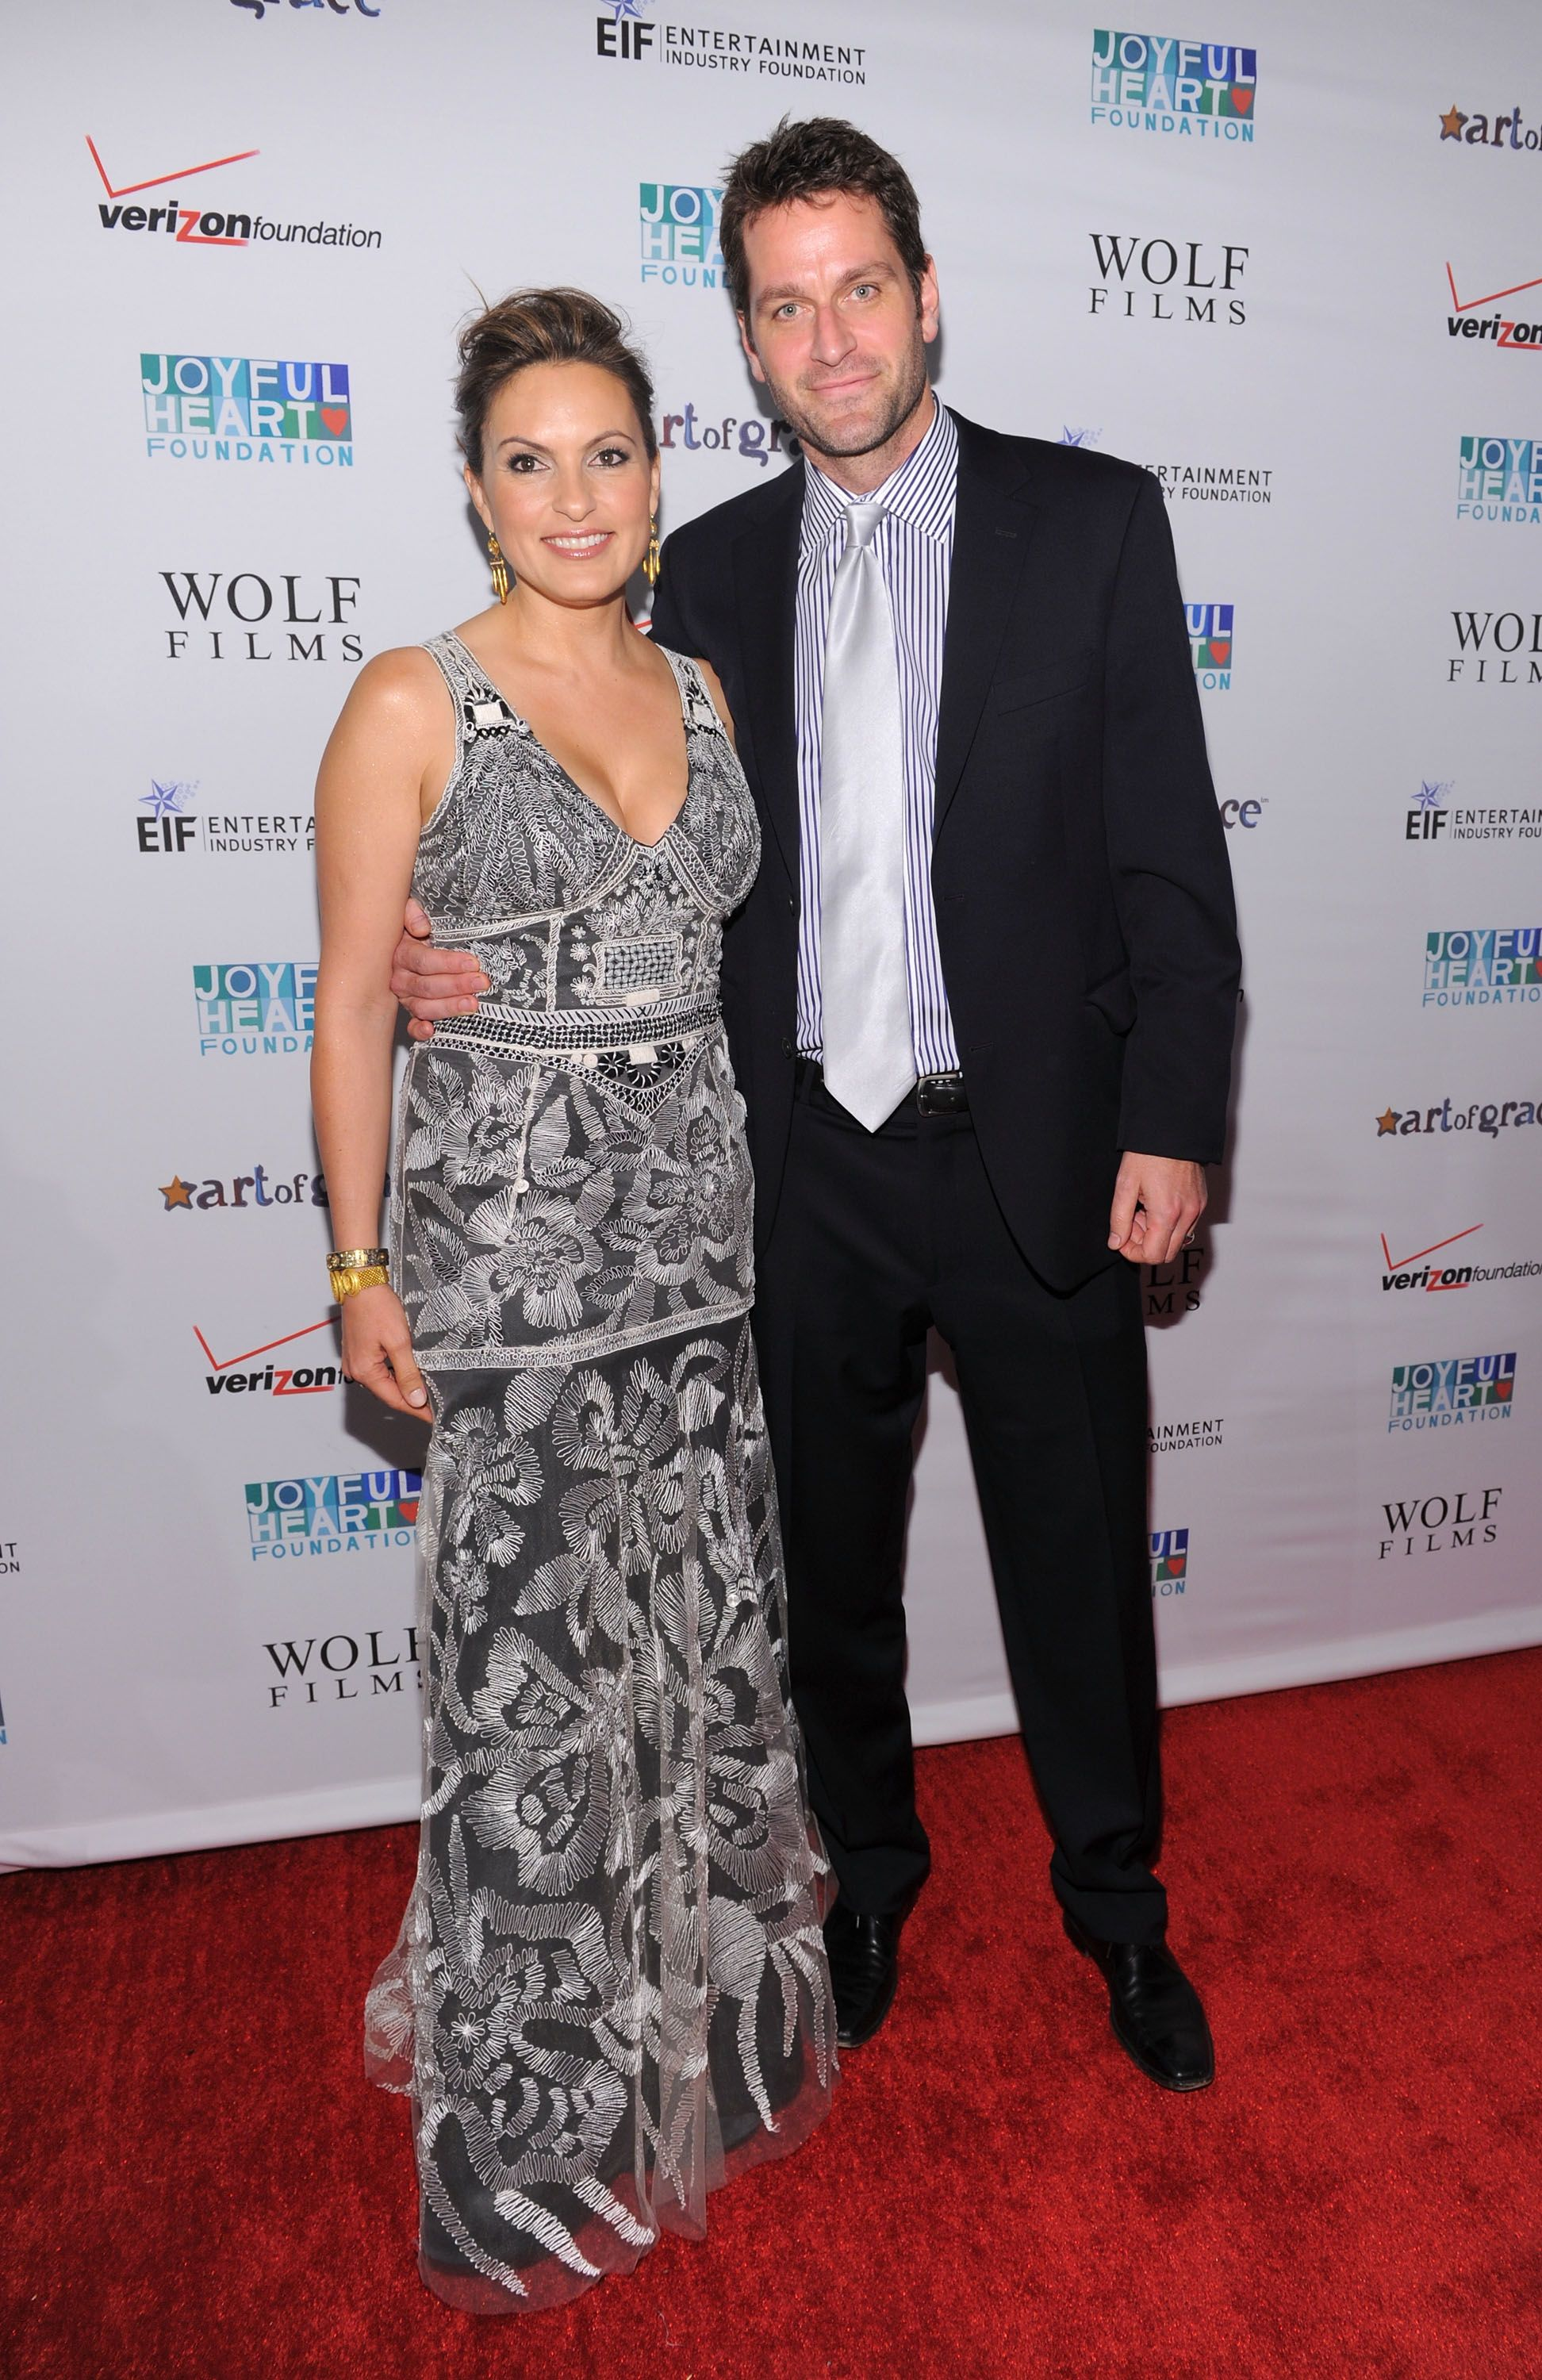 Mariska Hargitay and Peter Hermann attheJoyful Heart Foundation Gala at The Museum of Modern Art on May 17, 2011, in New York City | Photo:Mike Coppola/Getty Images